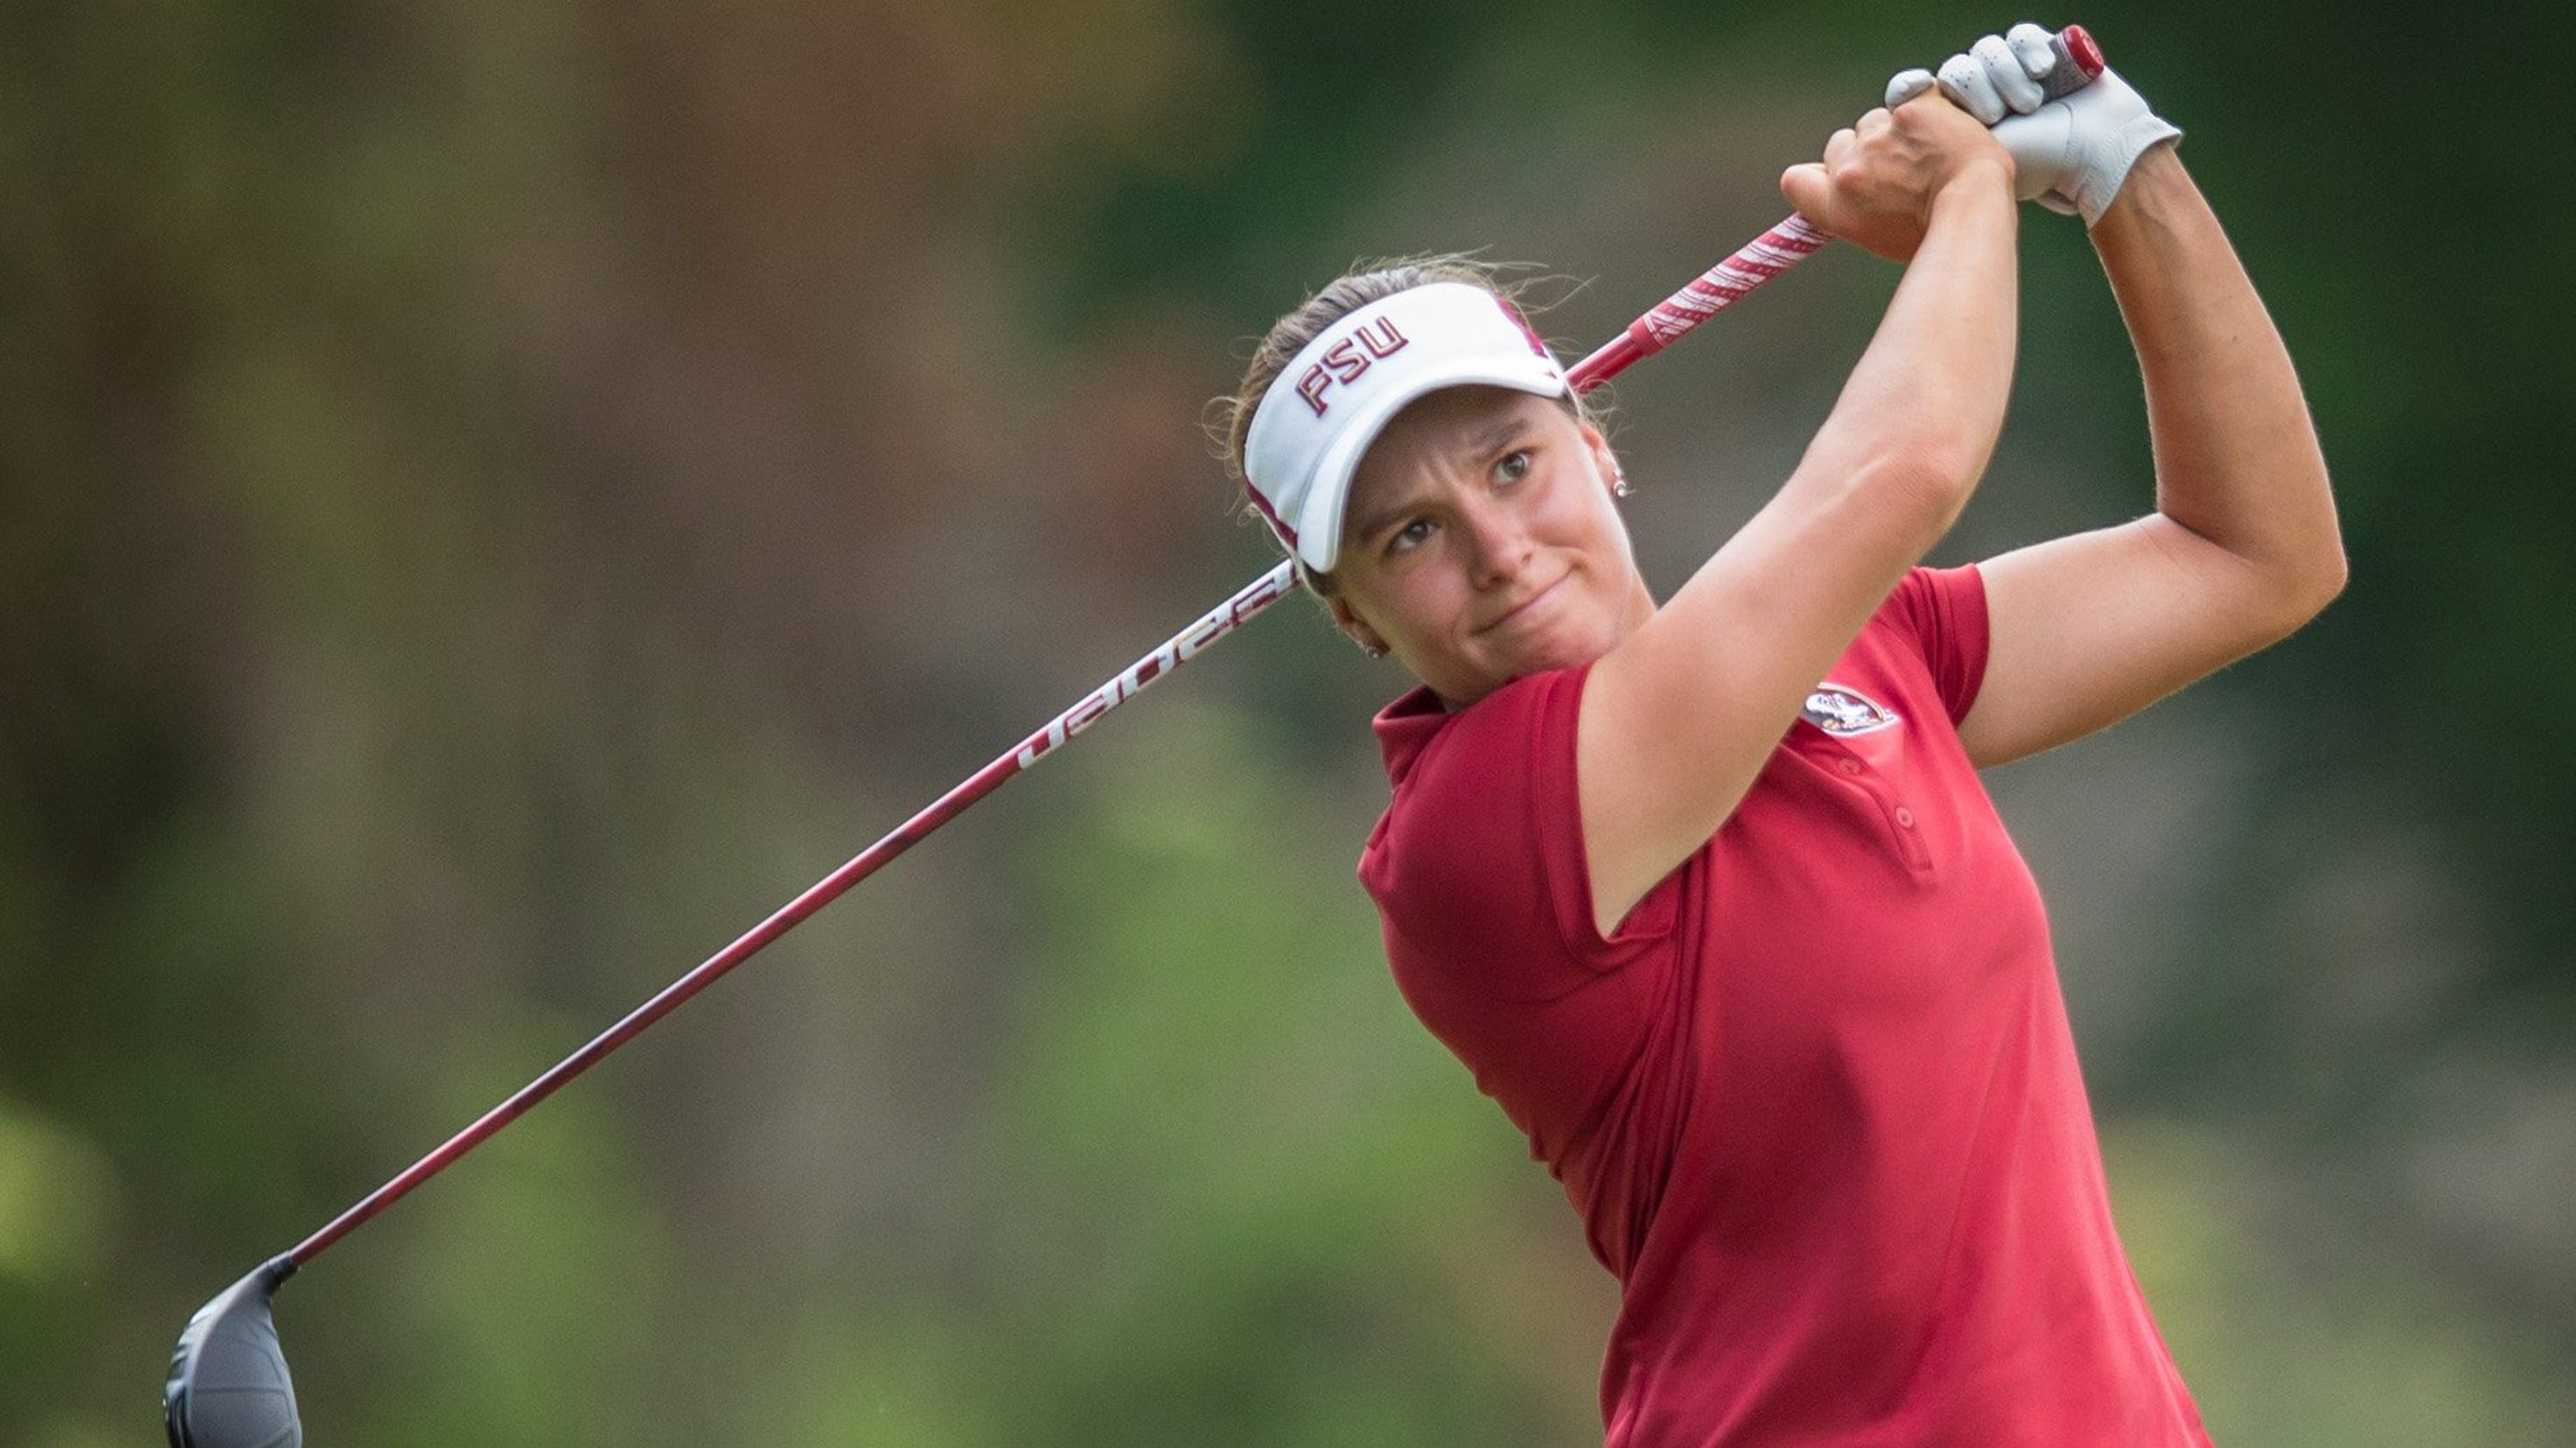 NCAA Women's Golf Championship 2019: How To Watch, Stream